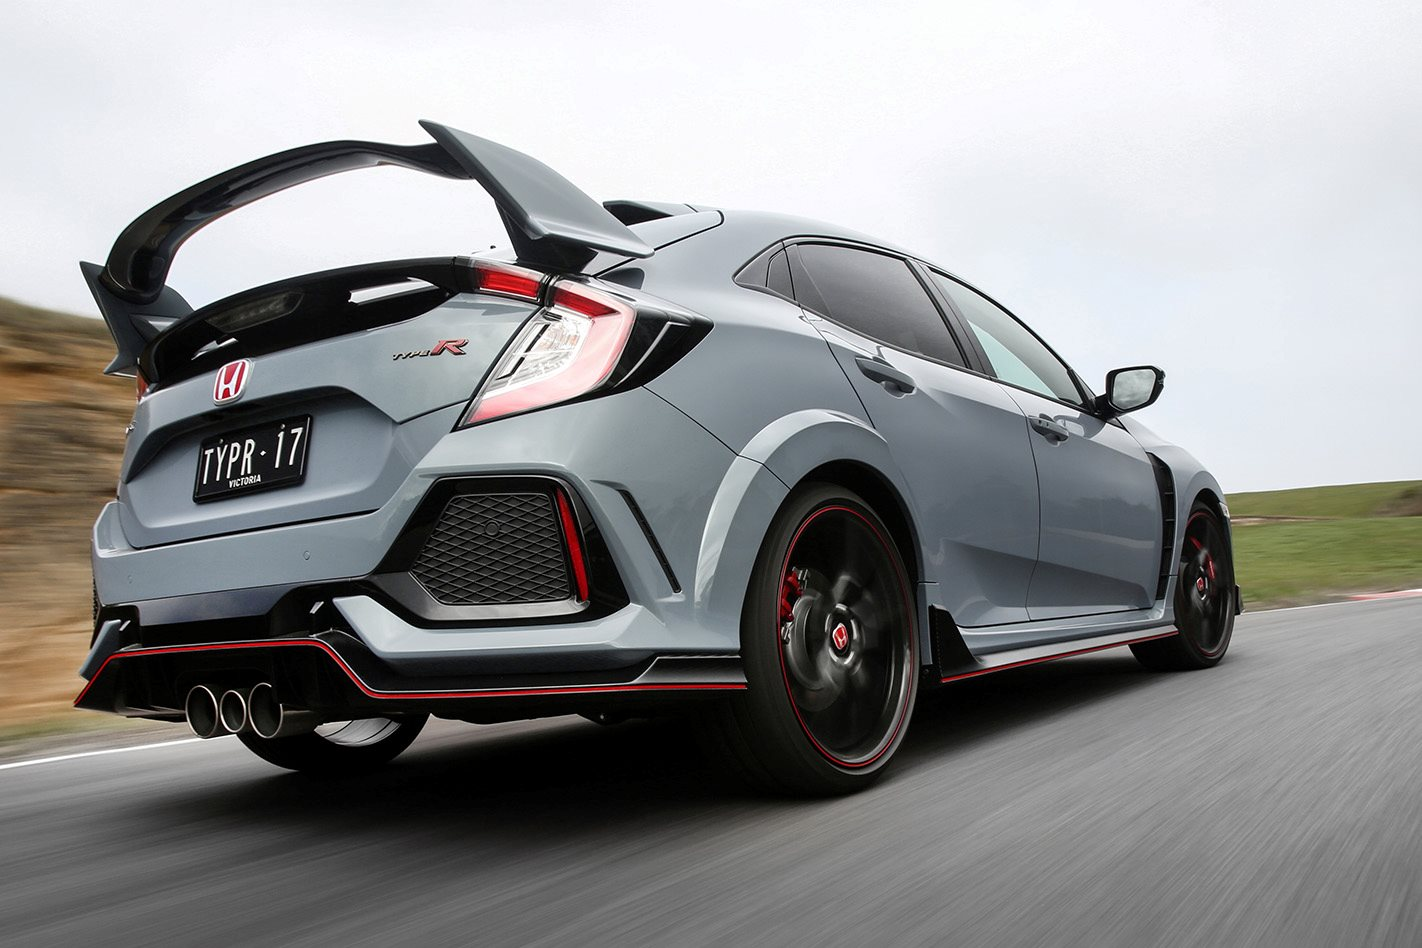 2018 honda civic type r. Modren Civic The Fifthgen Type R Takes The Surface Change In Its Stride Multilink  Suspension Absorbing Lumps And Bumps With Unexpected Maturity To 2018 Honda Civic Type R